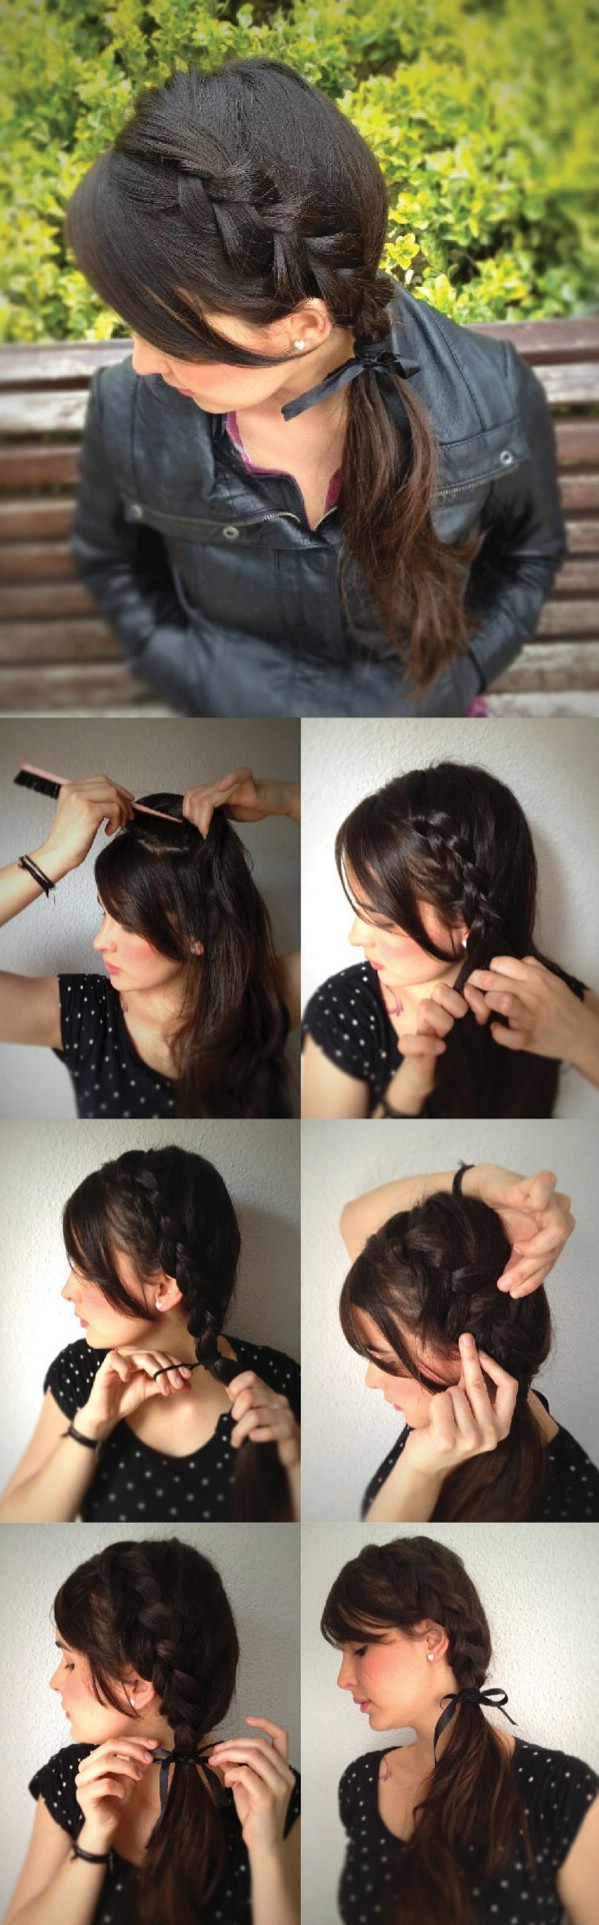 Inverted Side Braid